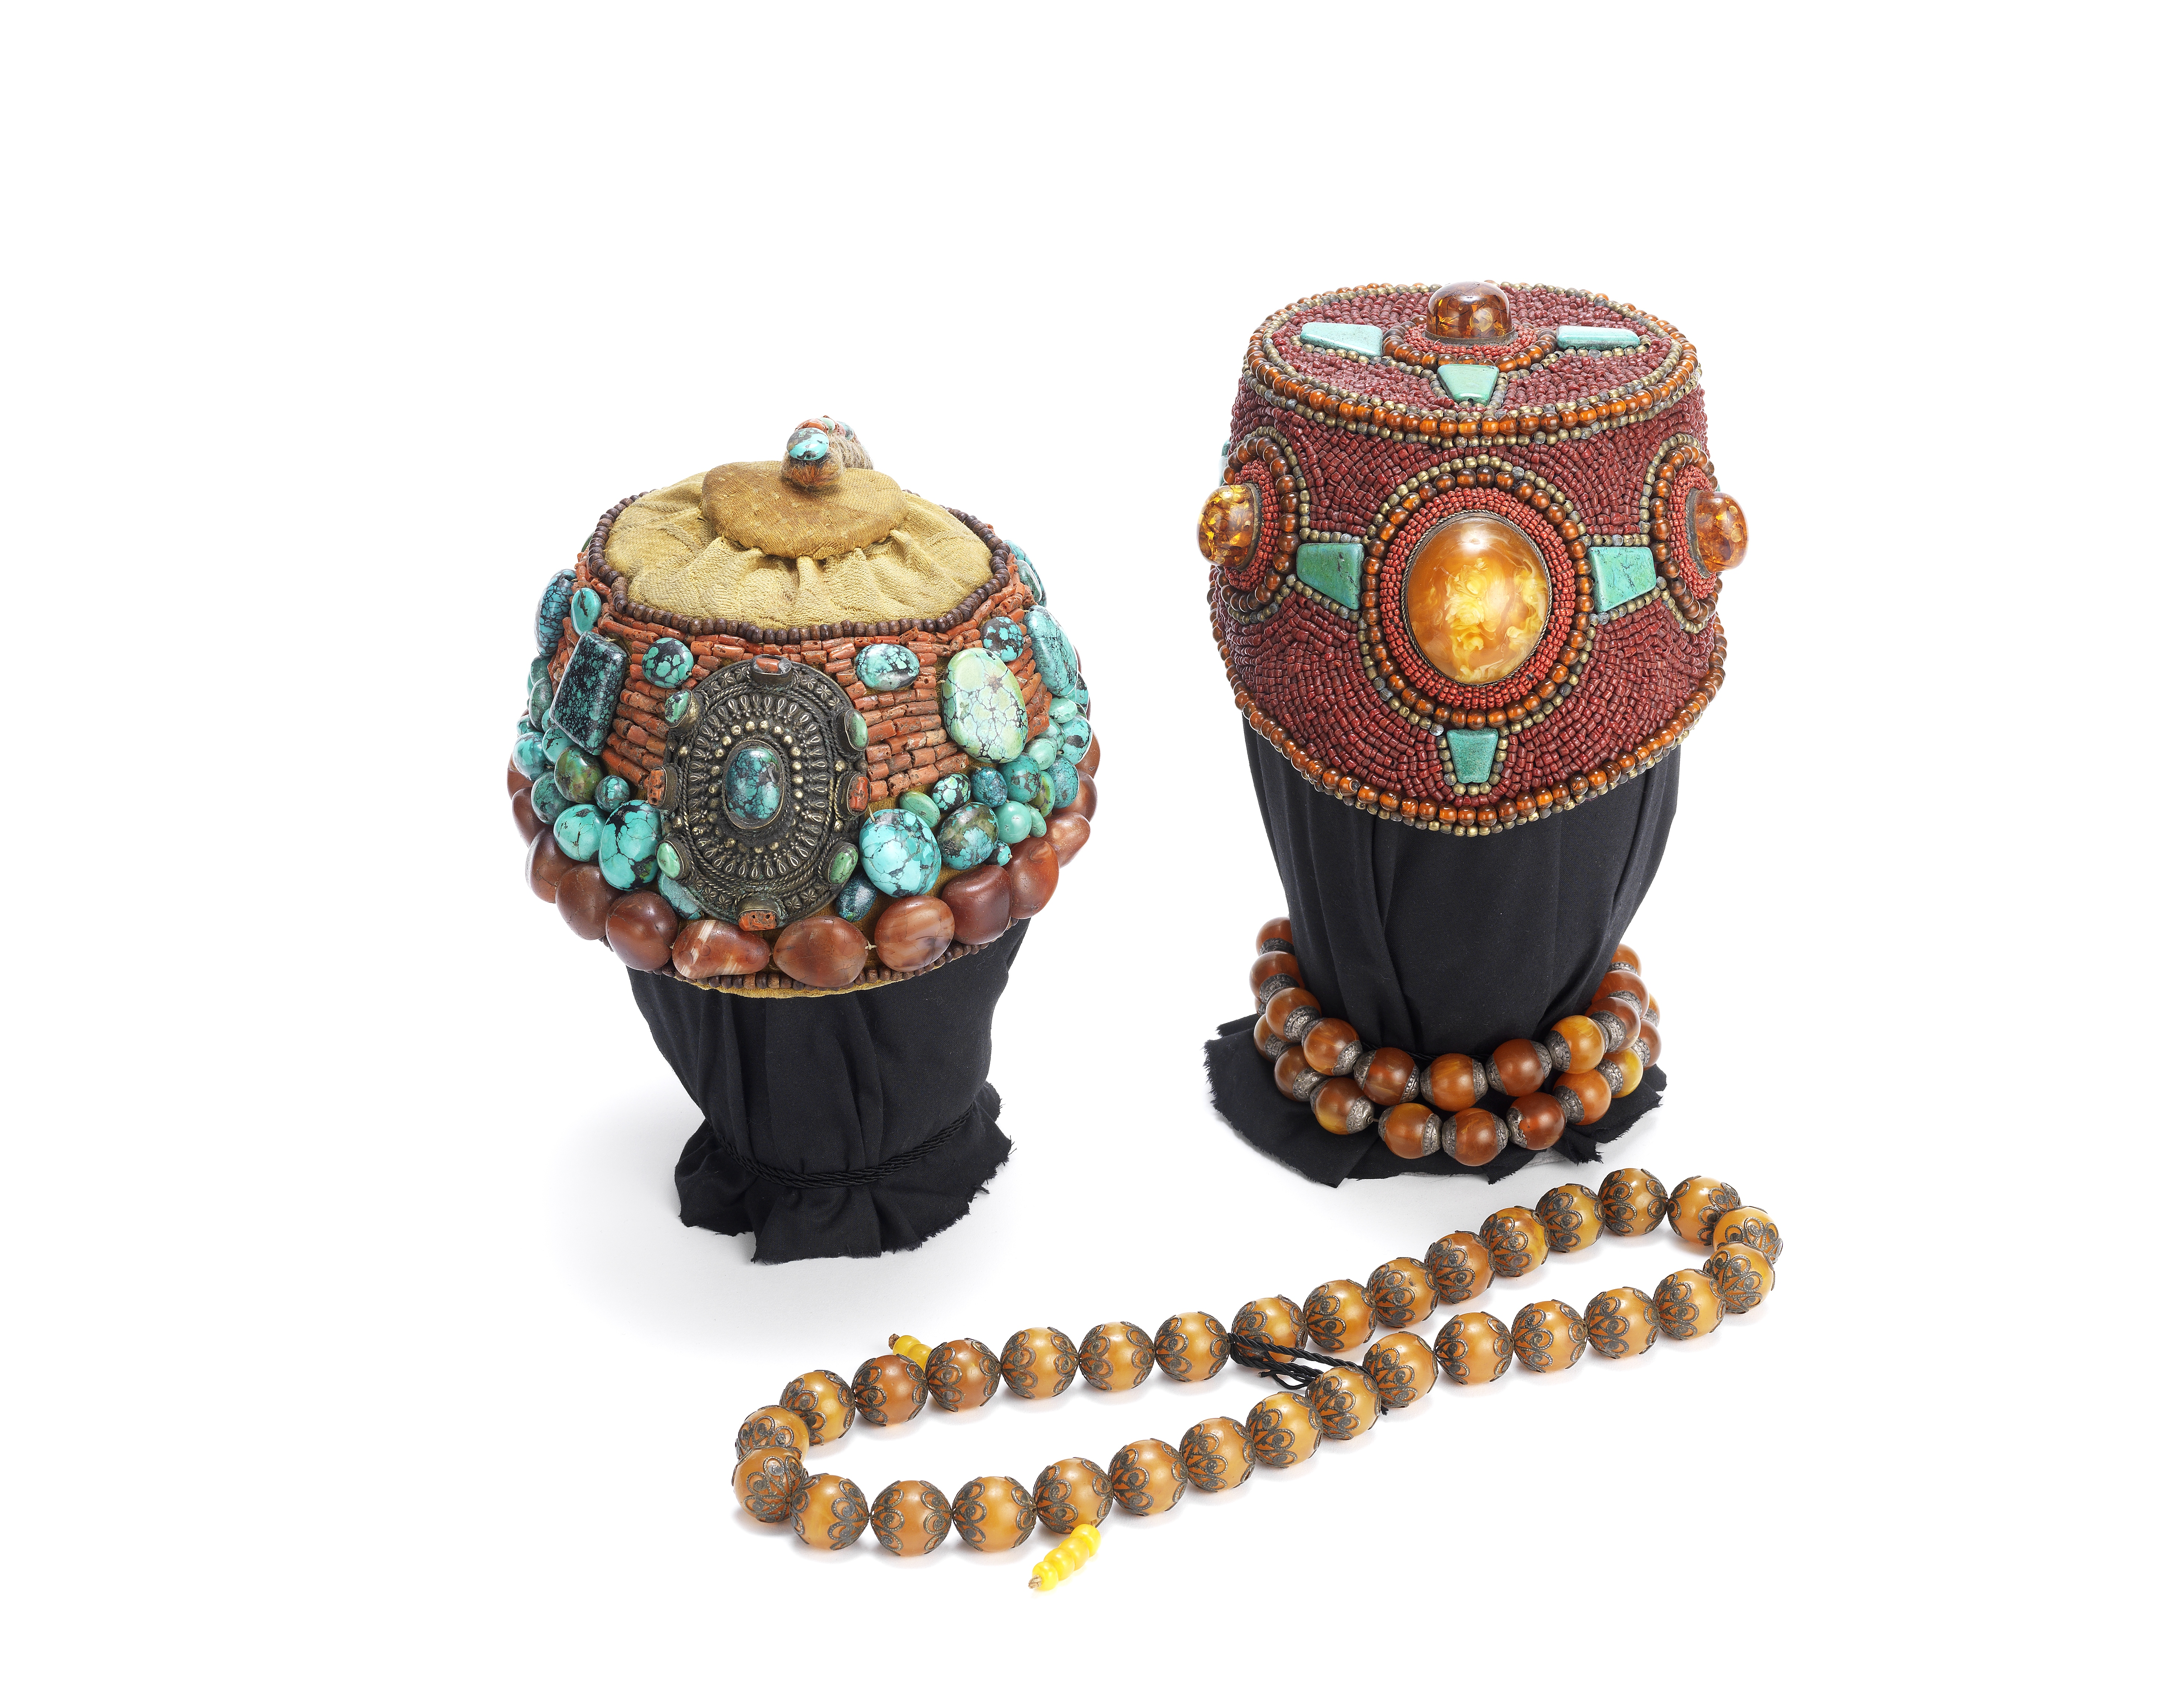 TWO RITUAL HATS AND TWO STRINGS OF PRAYER BEADS Tibet, circa 1840-1900 (6)